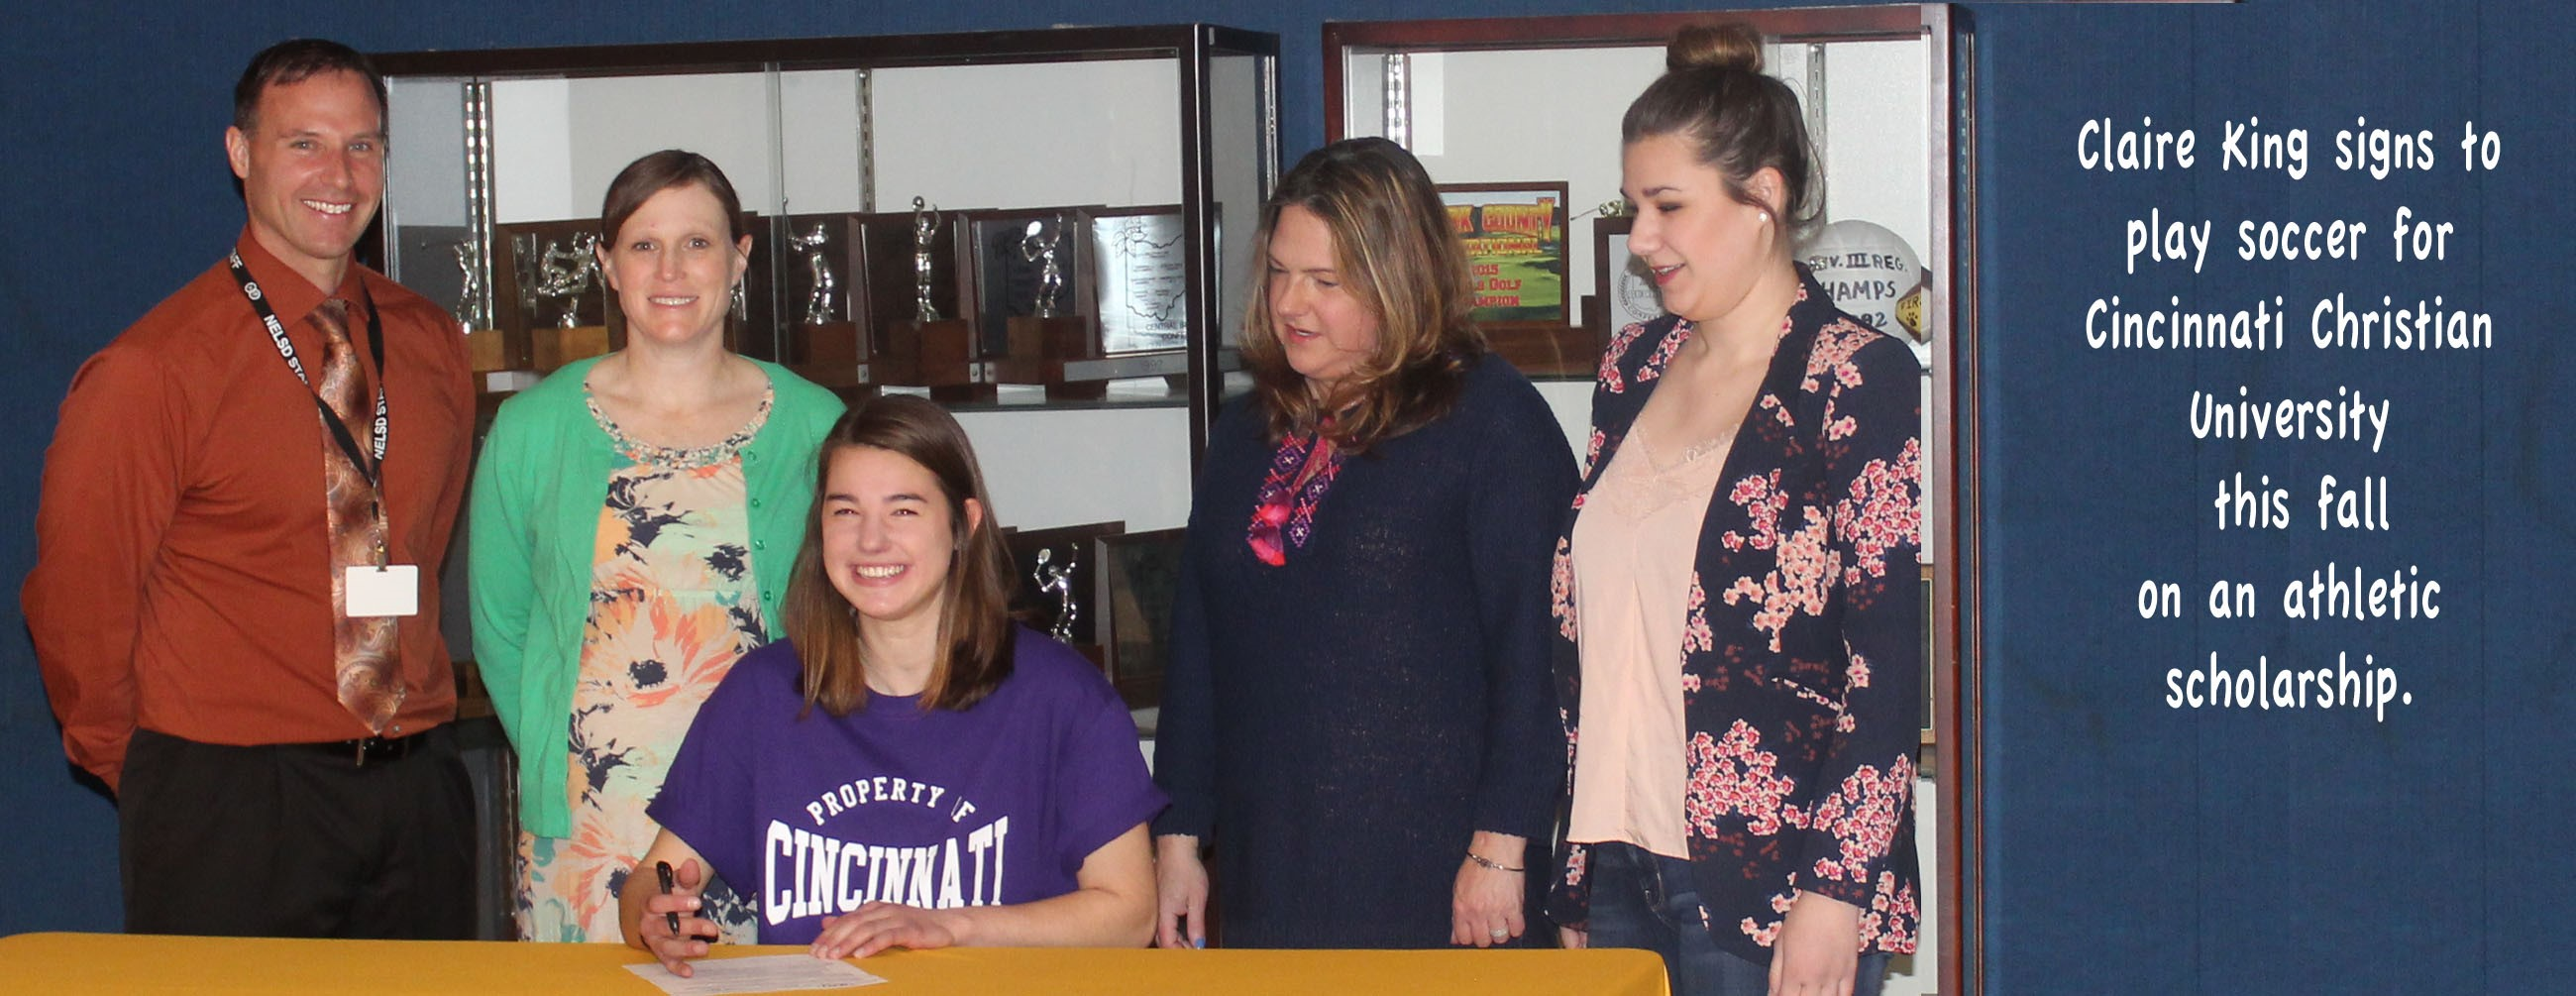 Claire King signs with CCU to play soccer